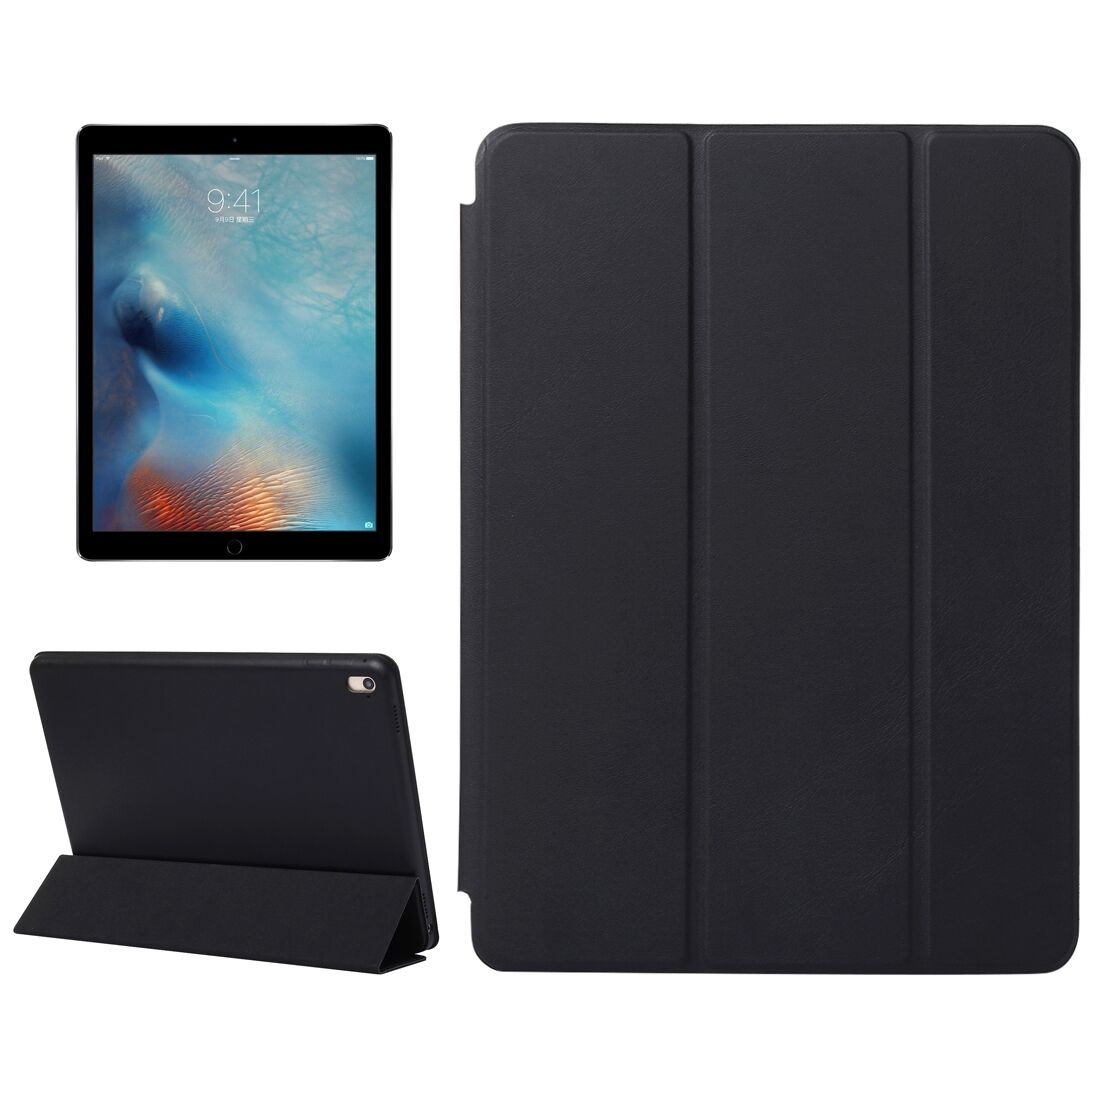 Custodia integrale per apple ipad air 2 9 7 nera smart cover supporto 